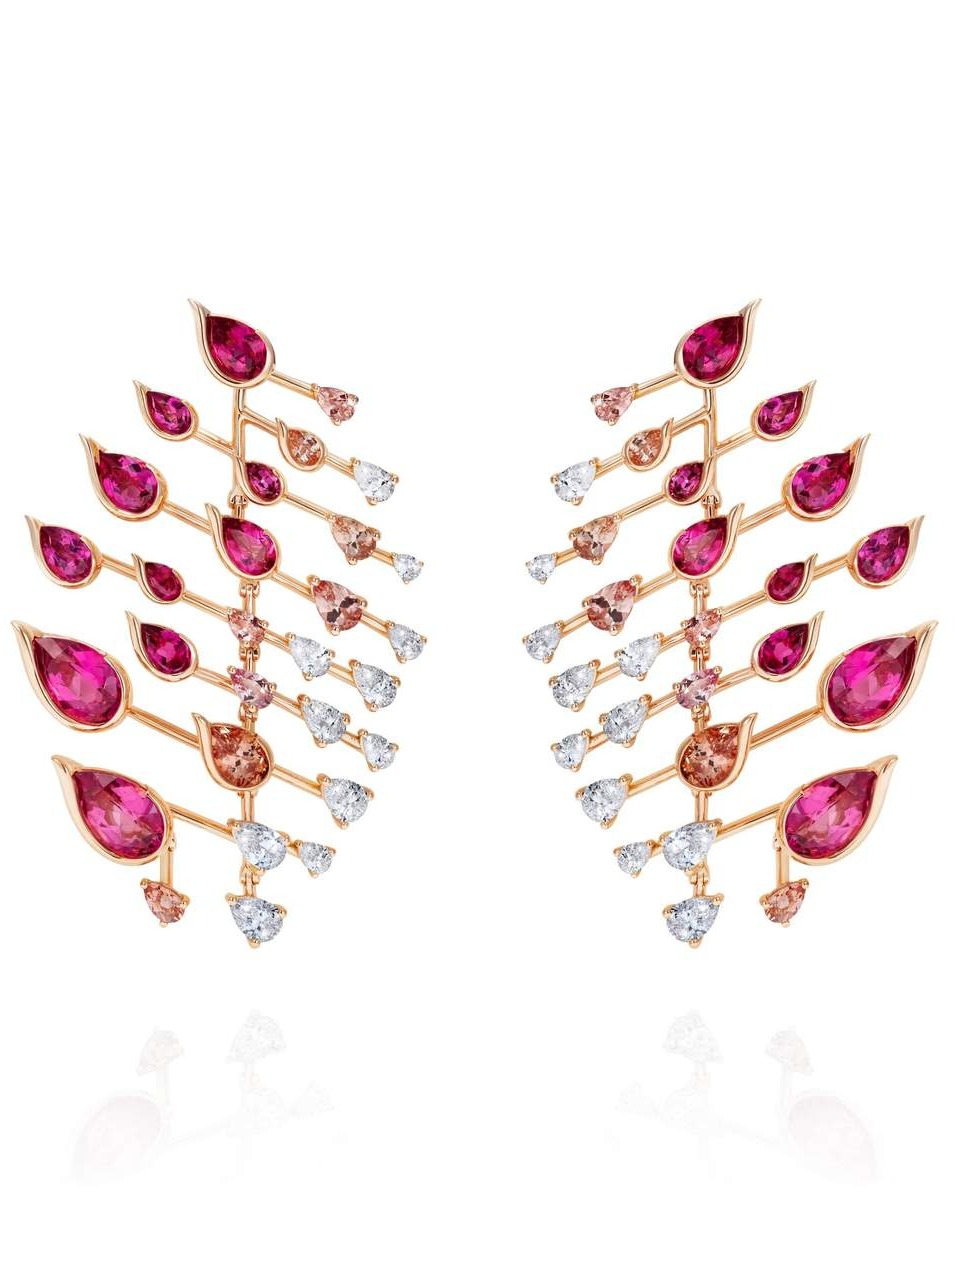 FERNANDO JORGE Rubellite Diamond and Topaz Flare Earrings